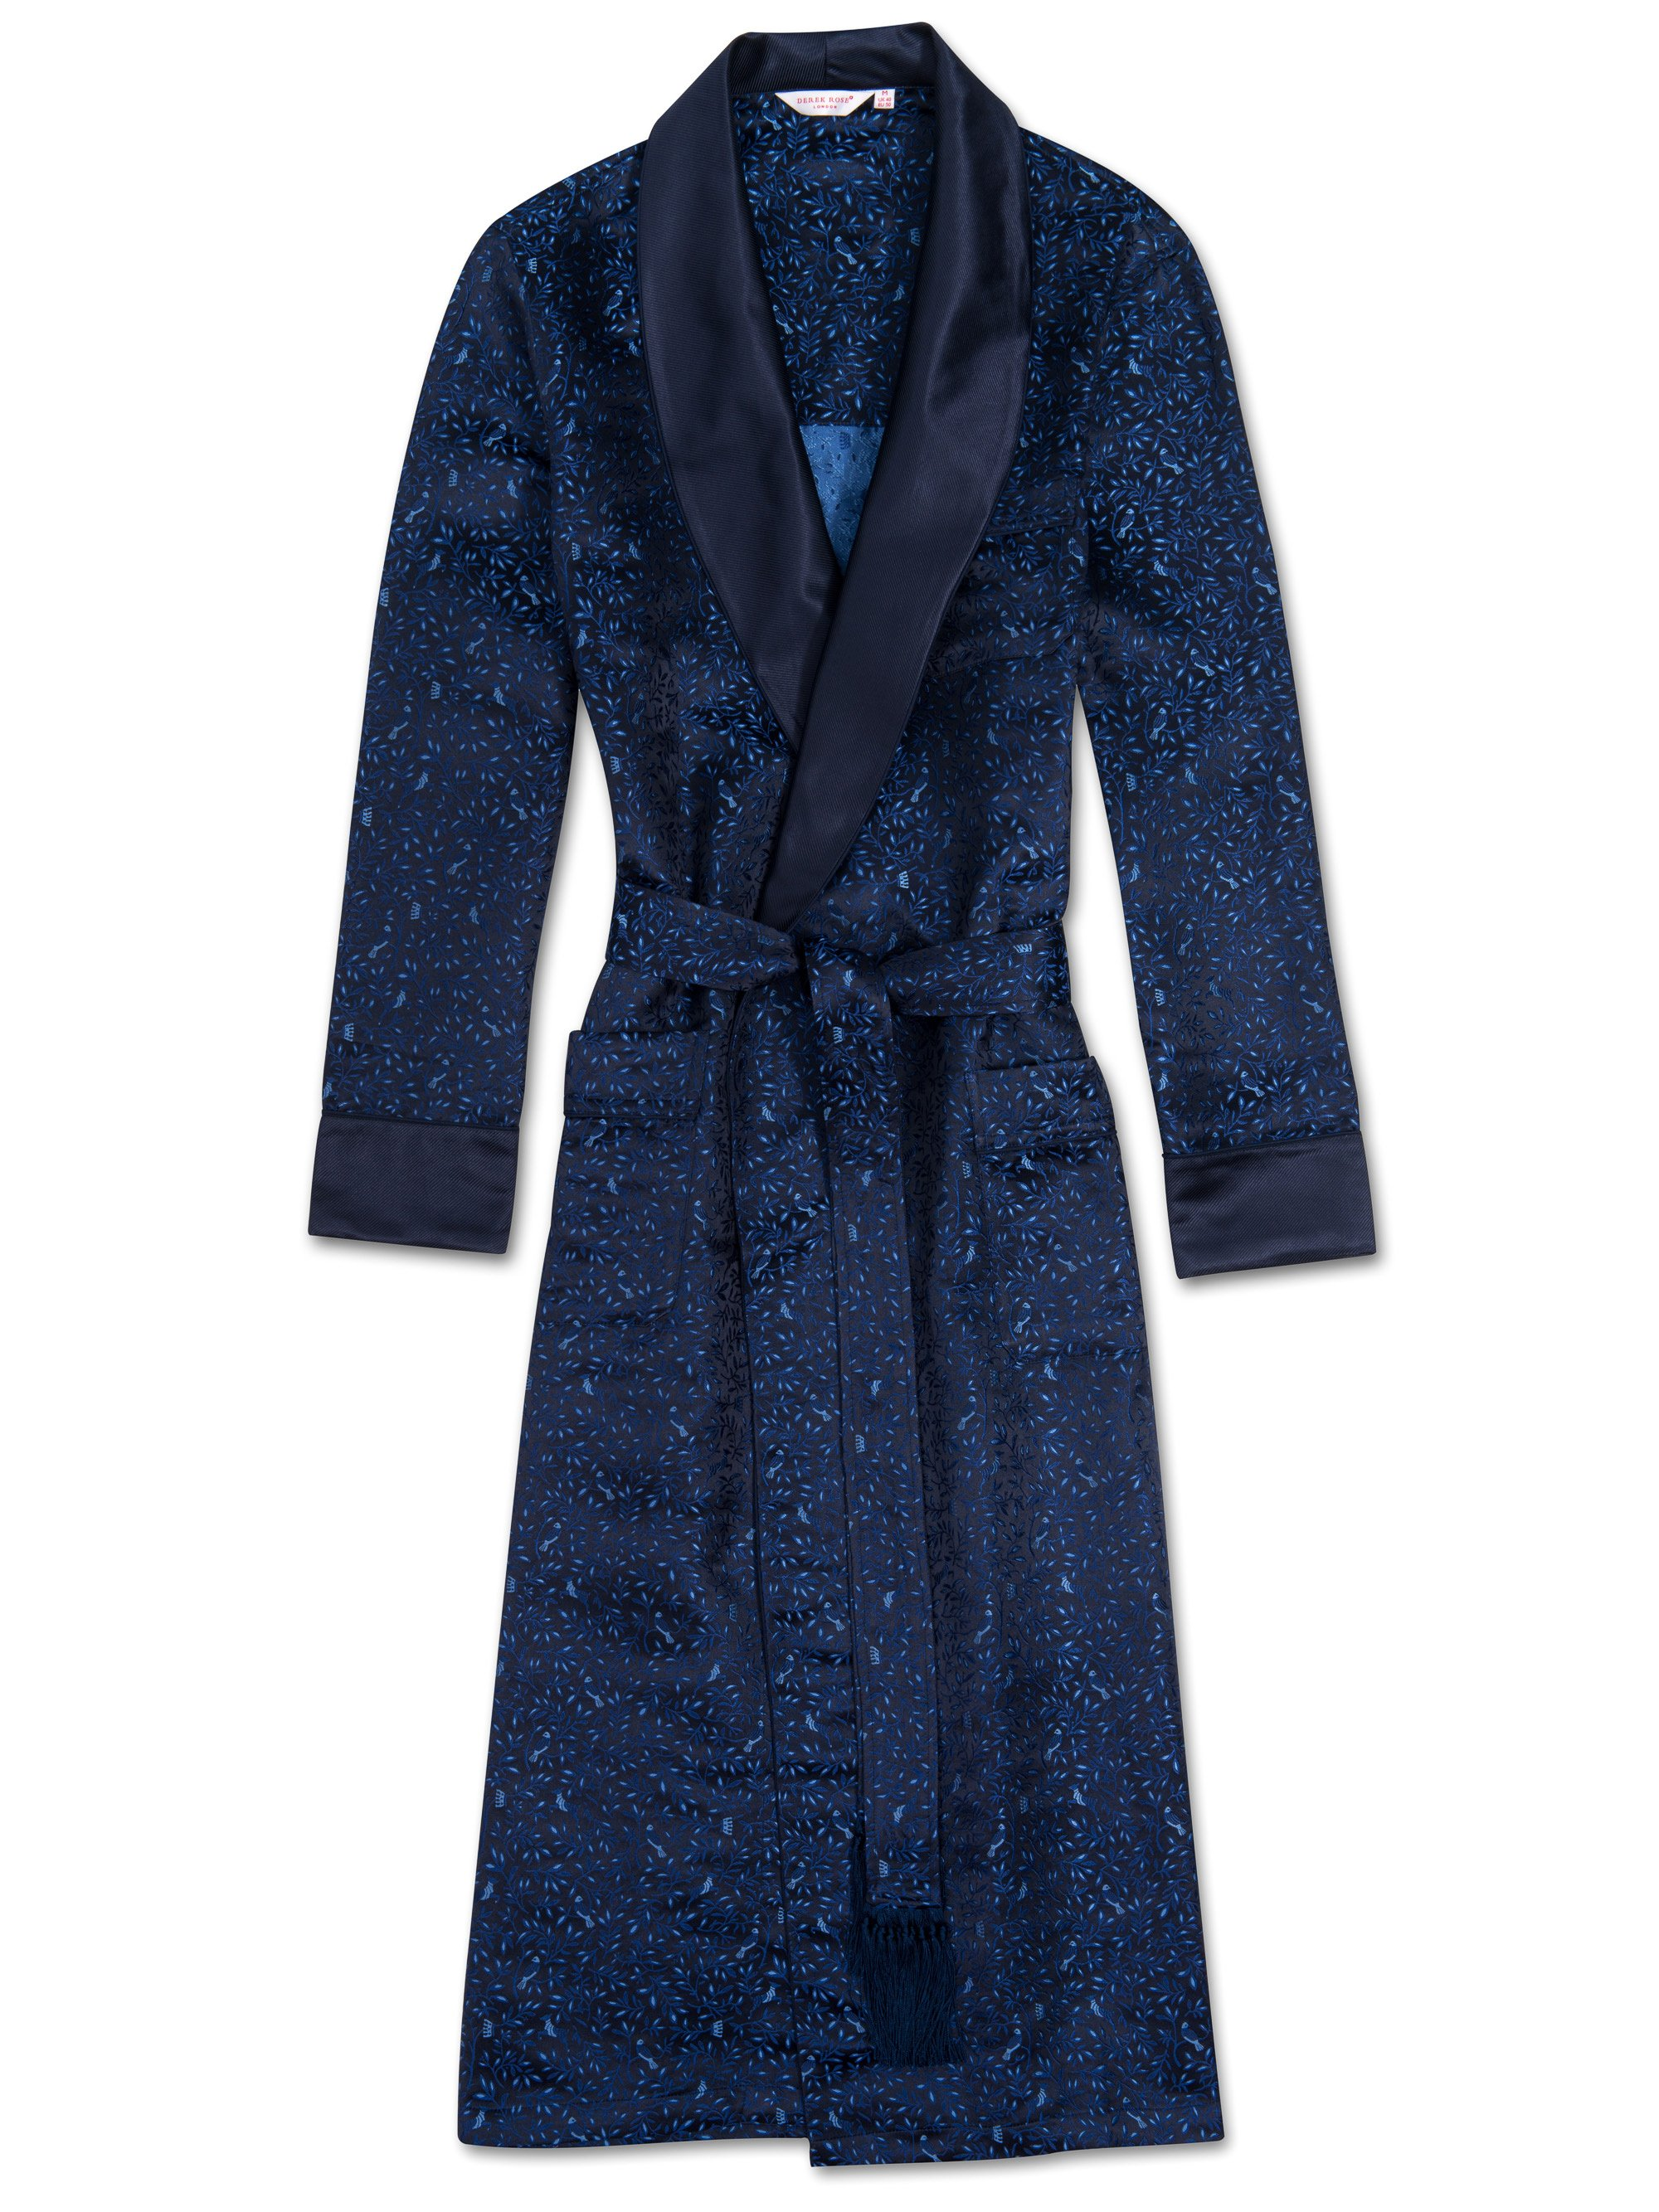 Men's Tasseled Belt Dressing Gown Verona 33 Pure Silk Blue